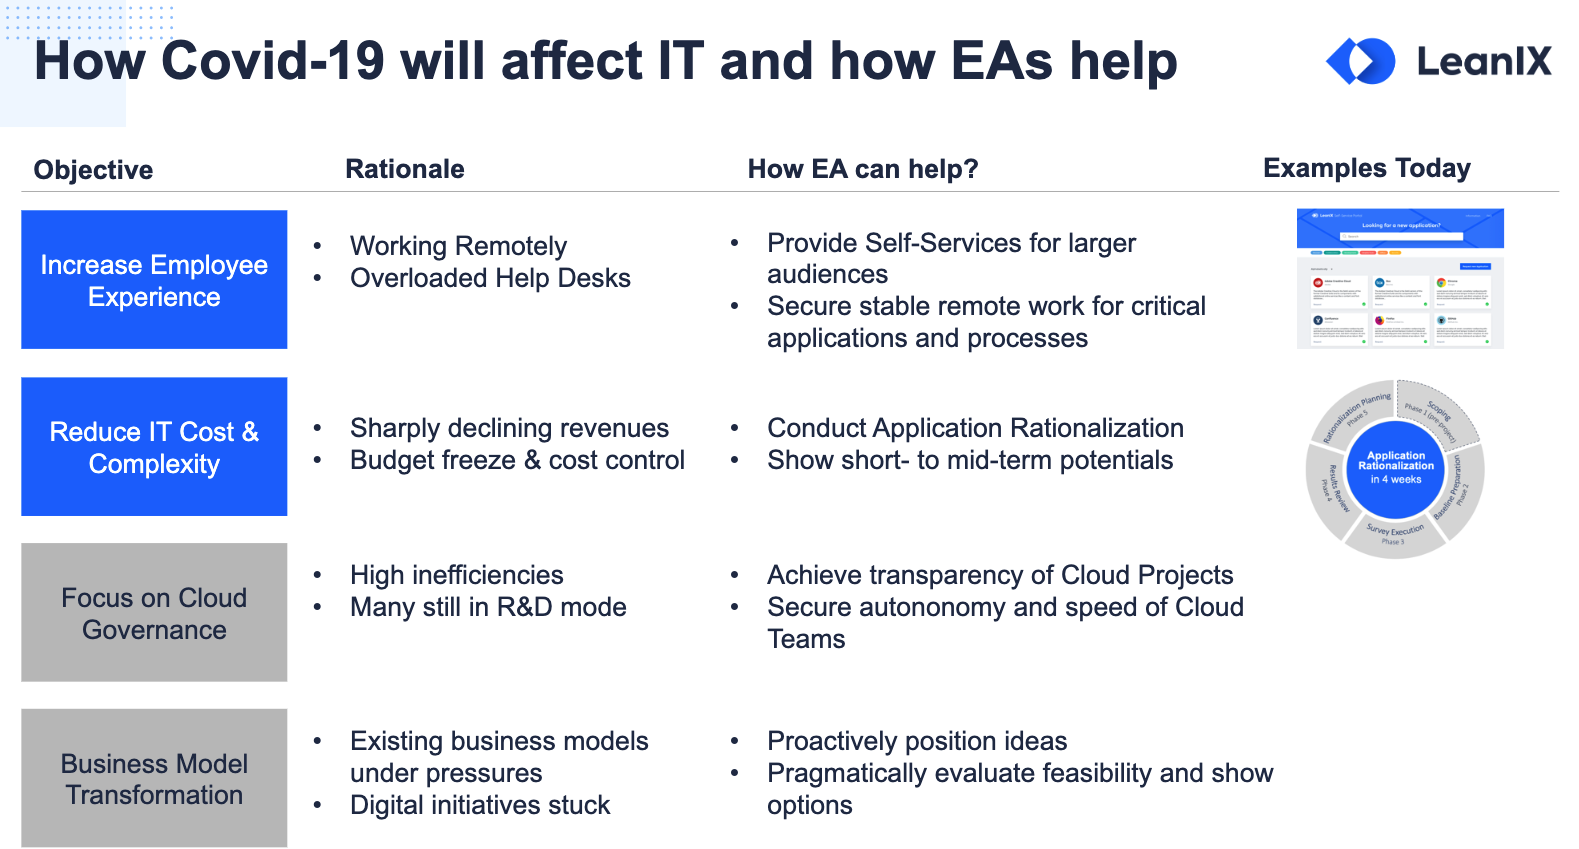 How COVID impacts IT and how EAs can help